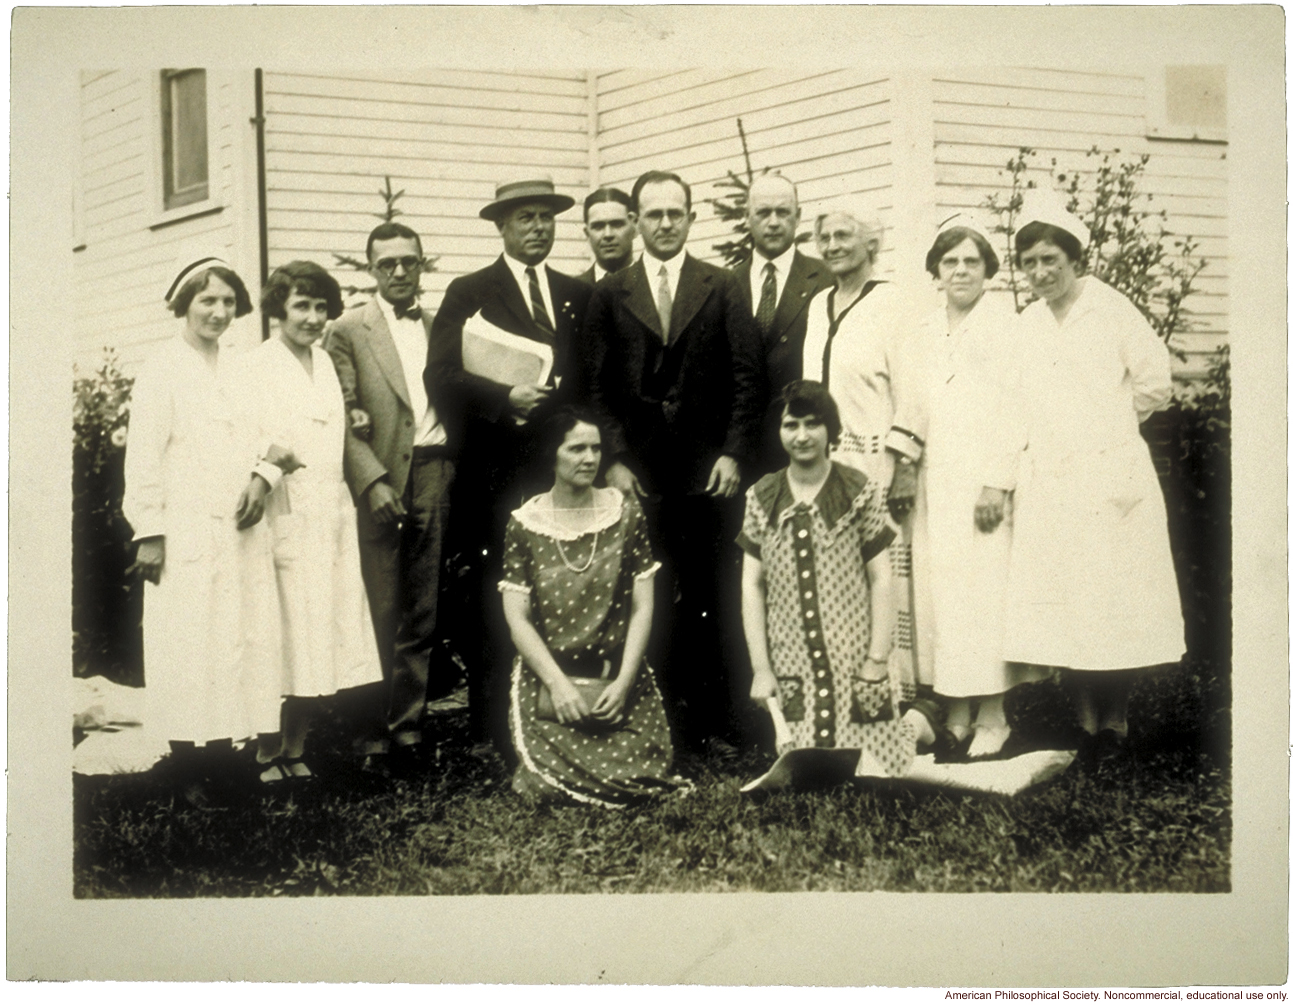 Examining staff for the Fitter Families Contest at Michigan State Fair. Leon F. Whitney (center) and Mary T. Watts (standing, third from right).